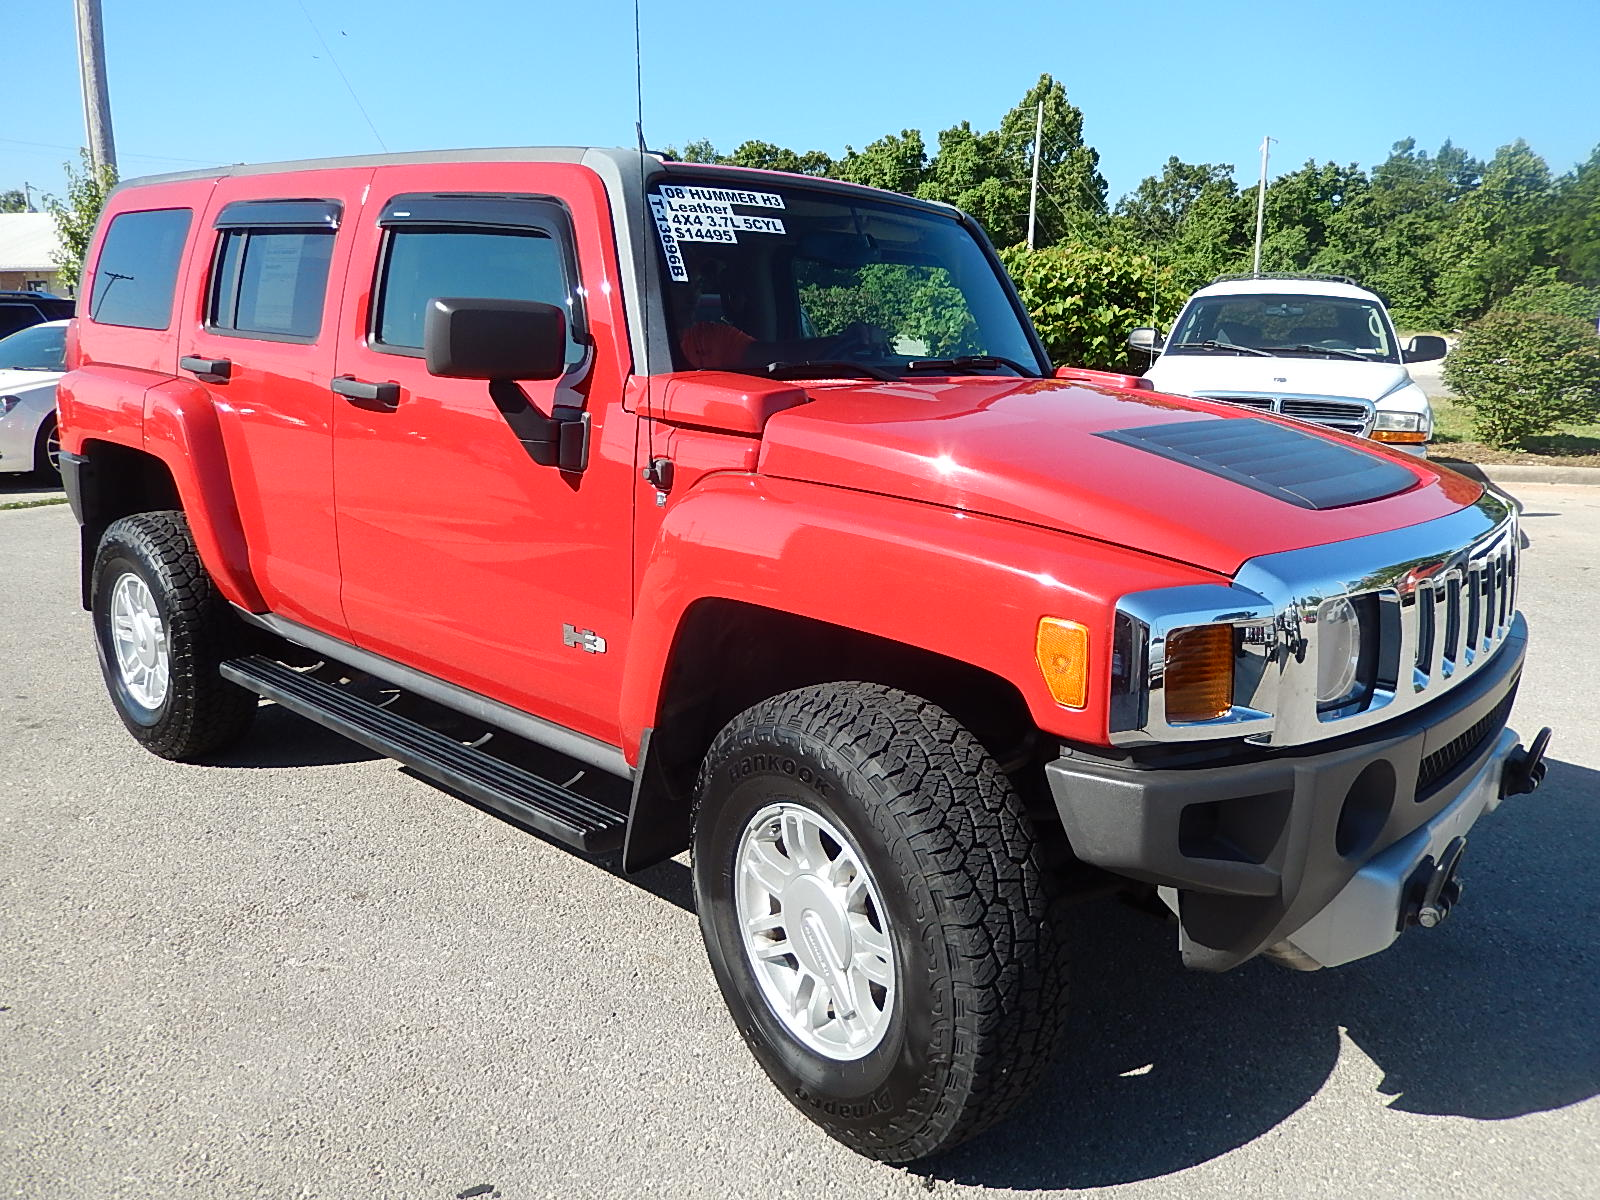 Hummer H3 H3x In Missouri For Sale ▷ Used Cars Buysellsearch